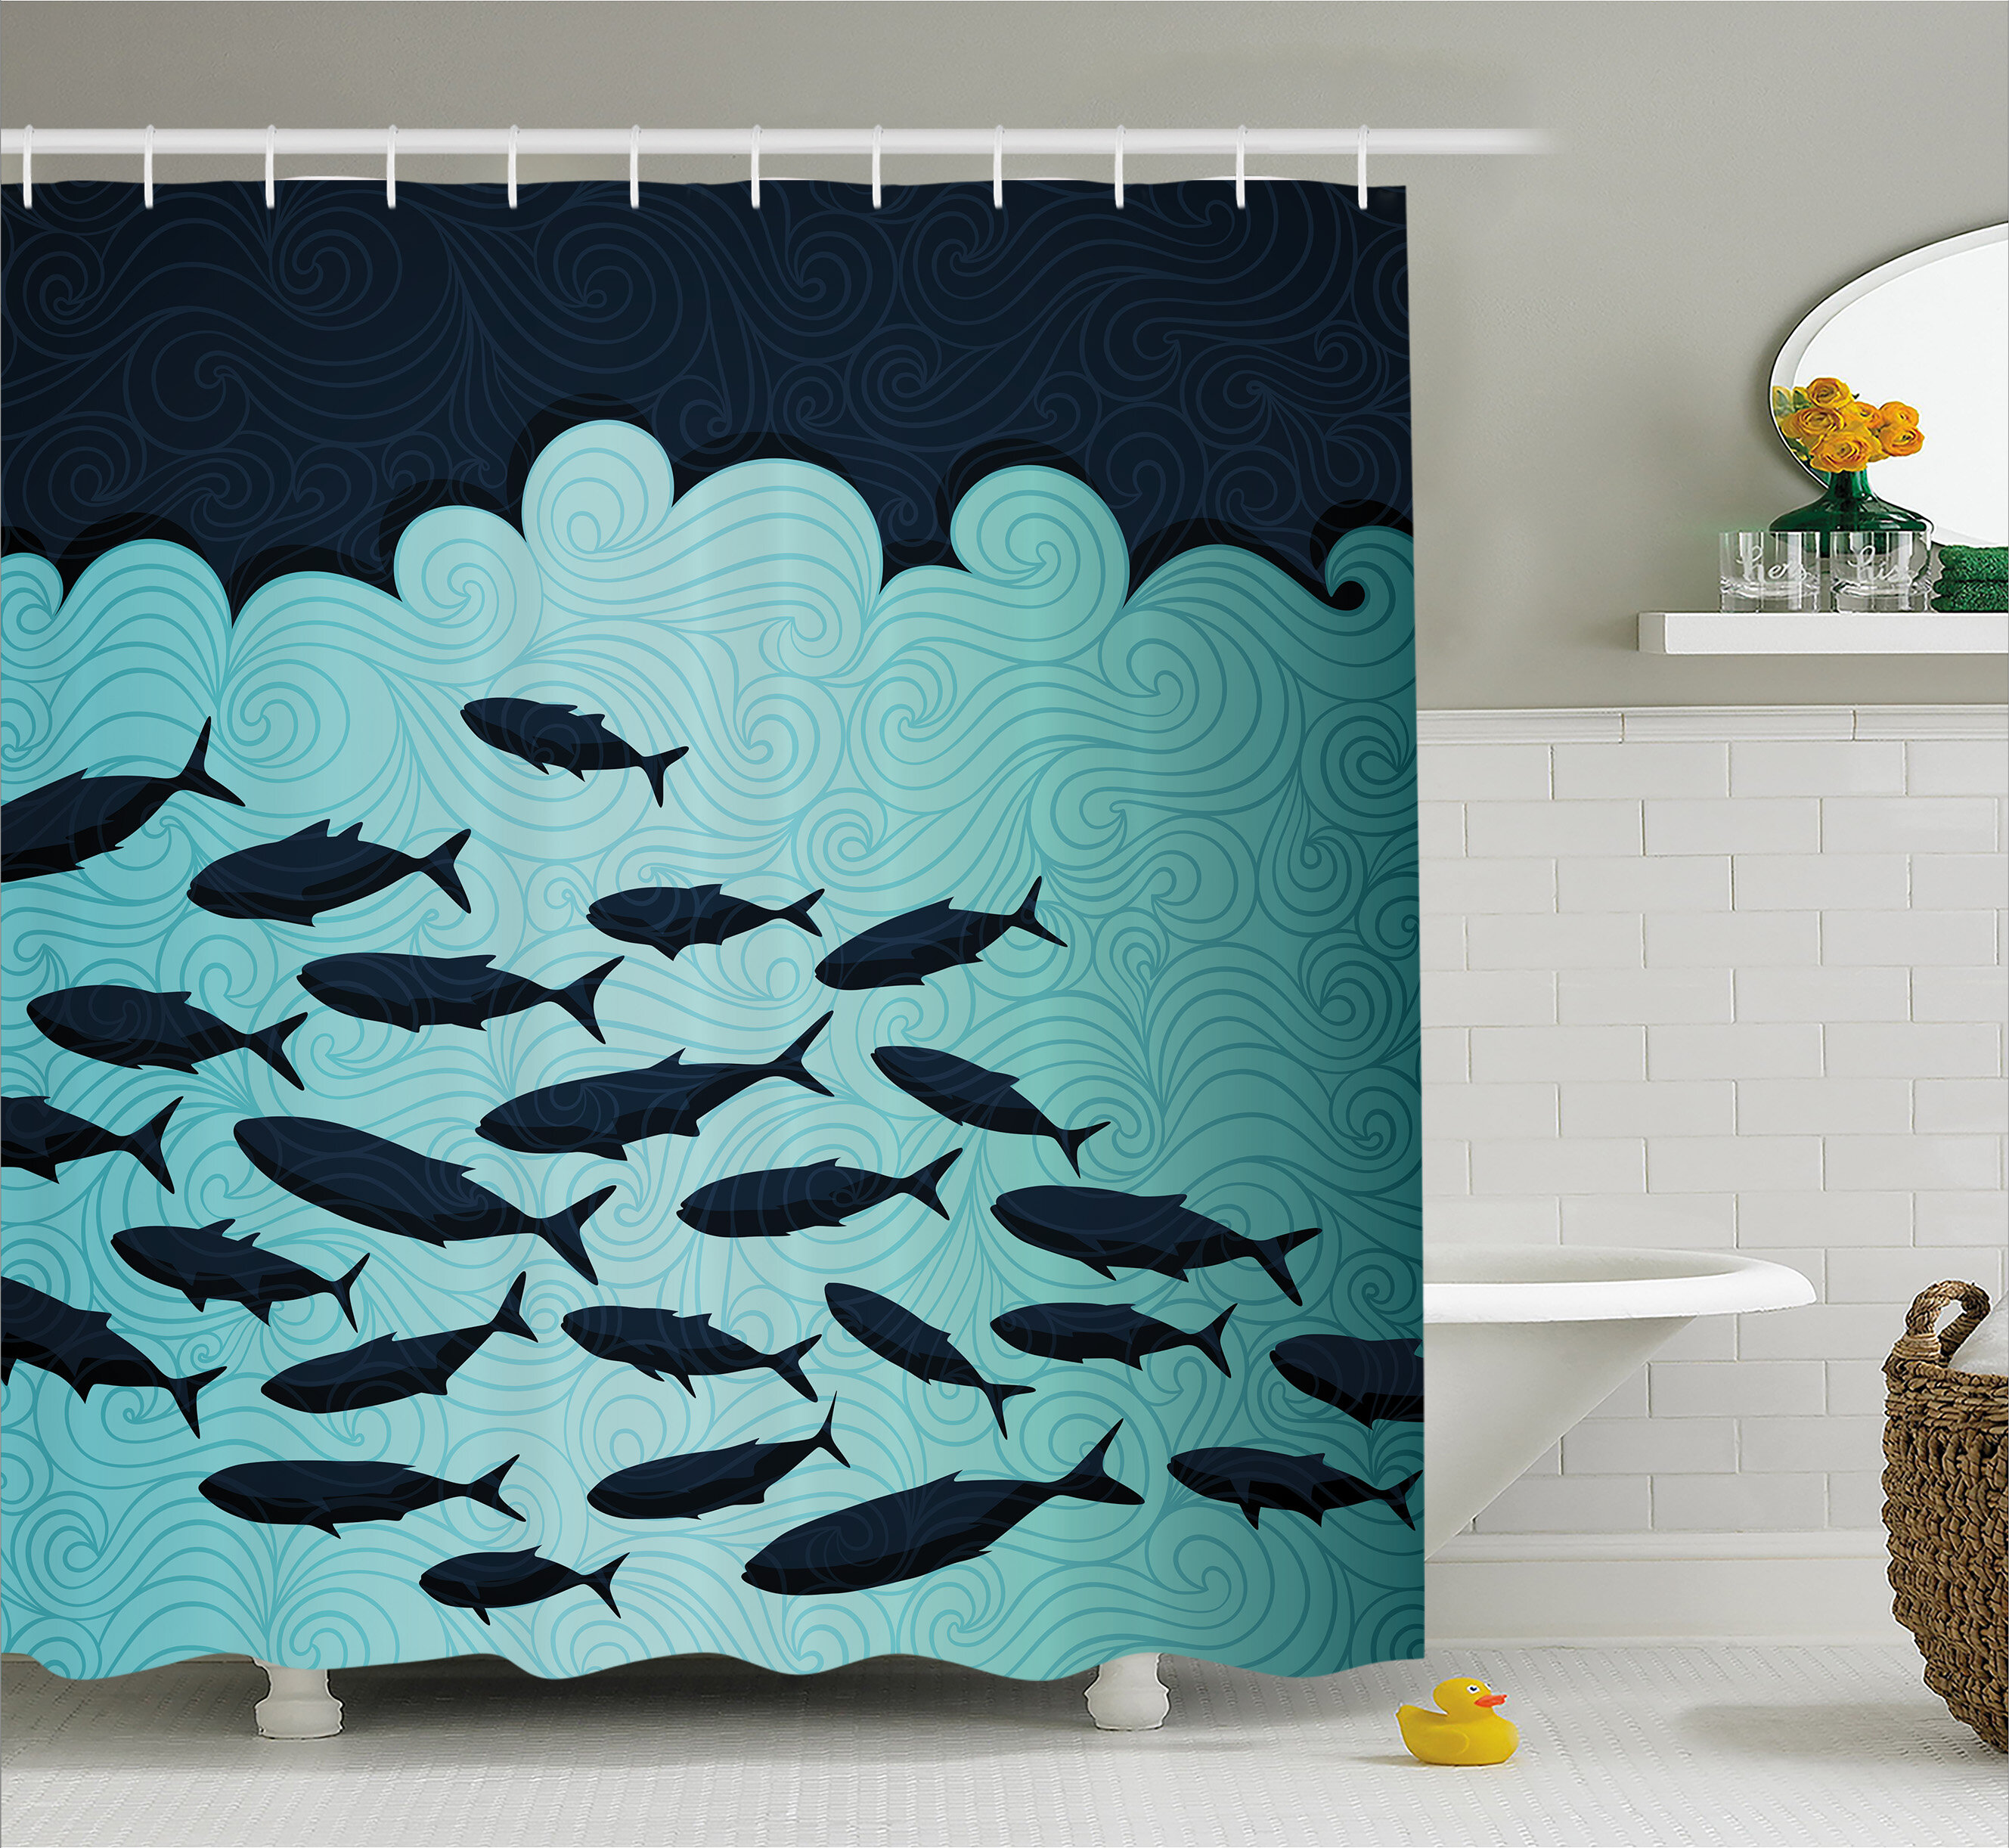 East urban home fish dive nautical decor shower curtain for Diving and fishing mural